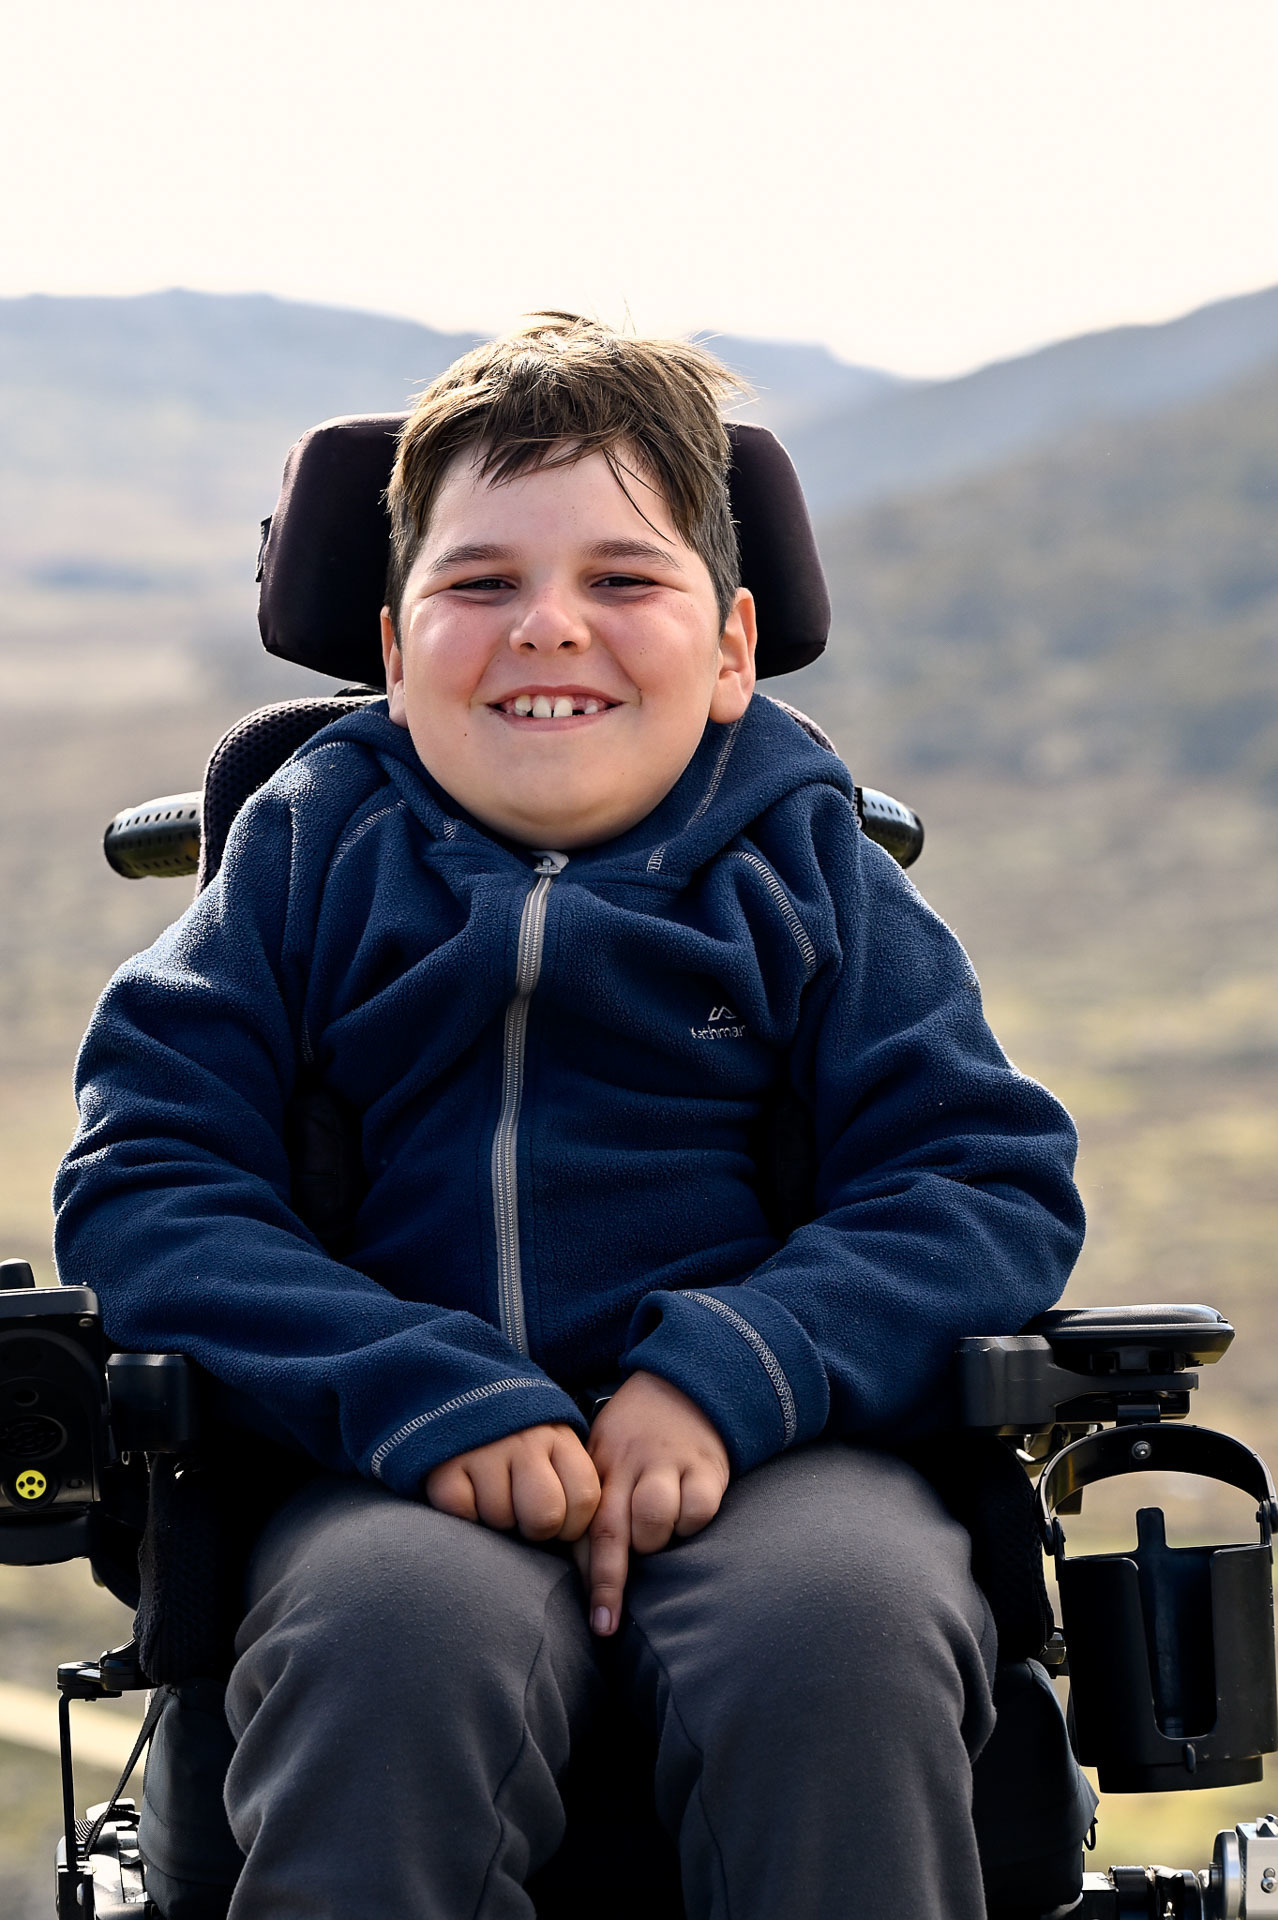 Josh a little boy with a big heart and an adventurous spirit, 4 Ideas for Accessible Adventures in NSW, joe kennedy, kosciuszko national park, summit track